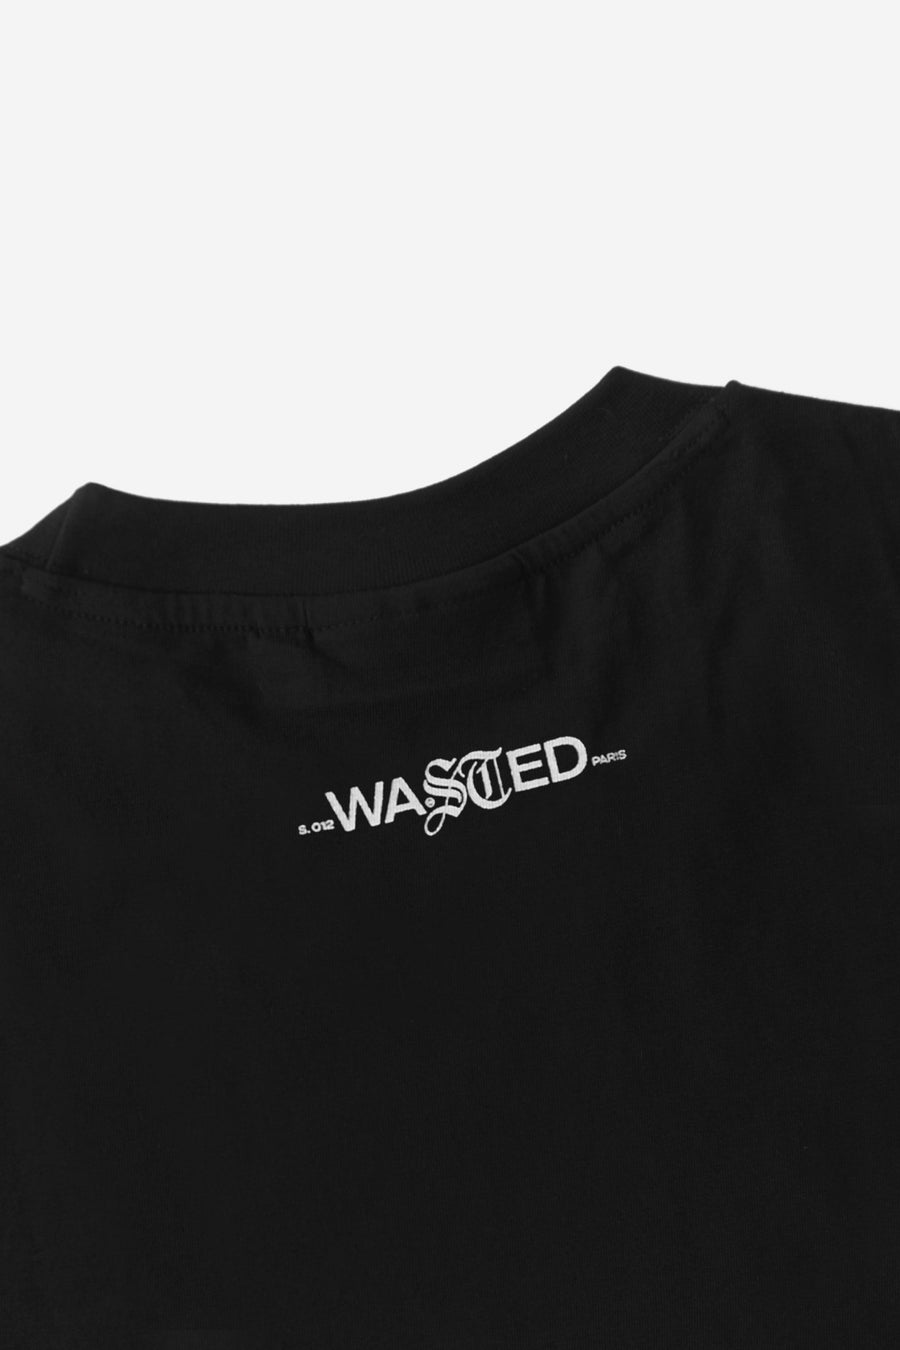 T-shirt Love Lust Ecstasy - WASTED PARIS